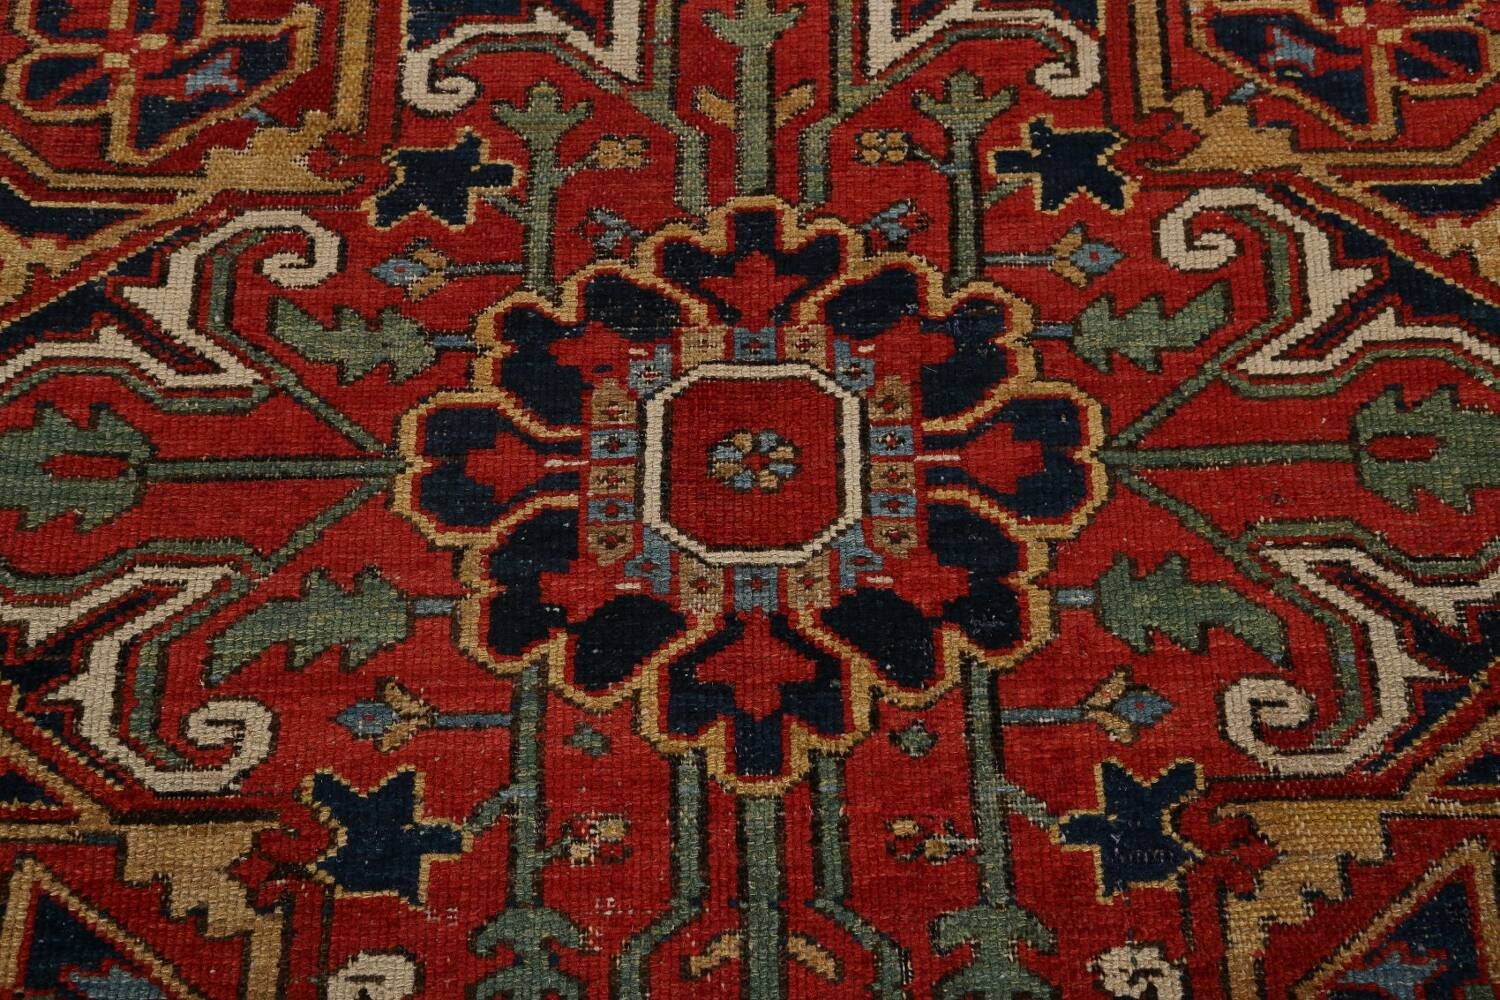 Pre-1900 Antique Vegetable Dye Heriz Serapi Persian Rug 12x14 image 13